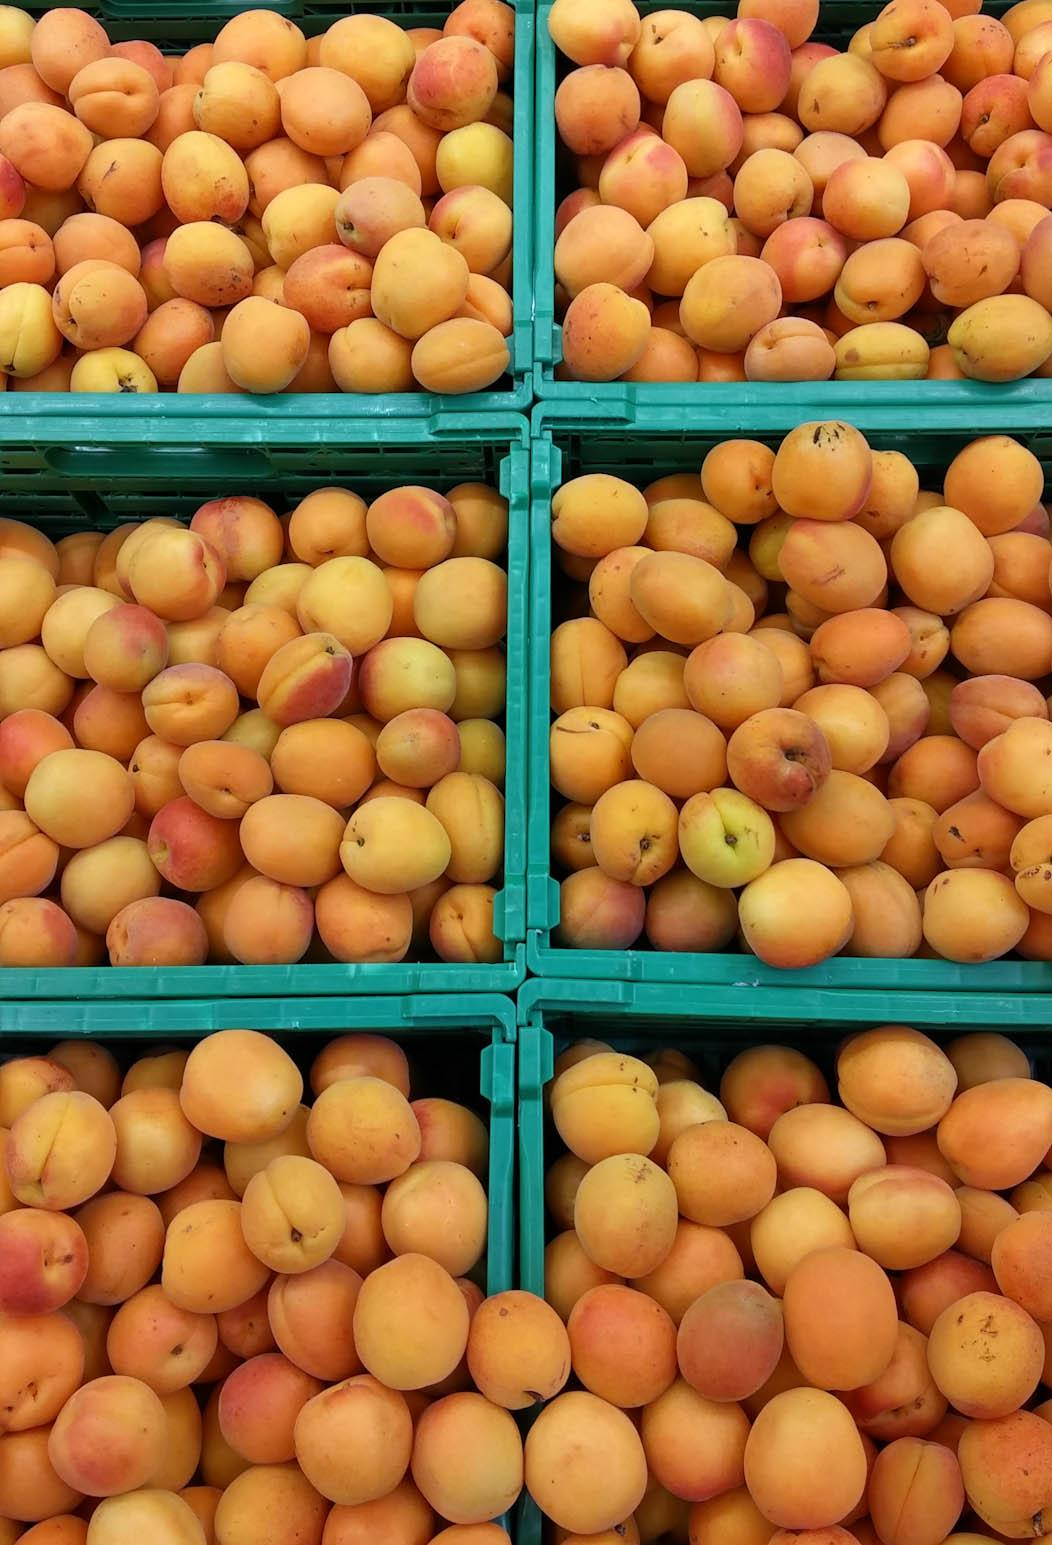 Apricots in a French supermarket on FalcondaleLife blog